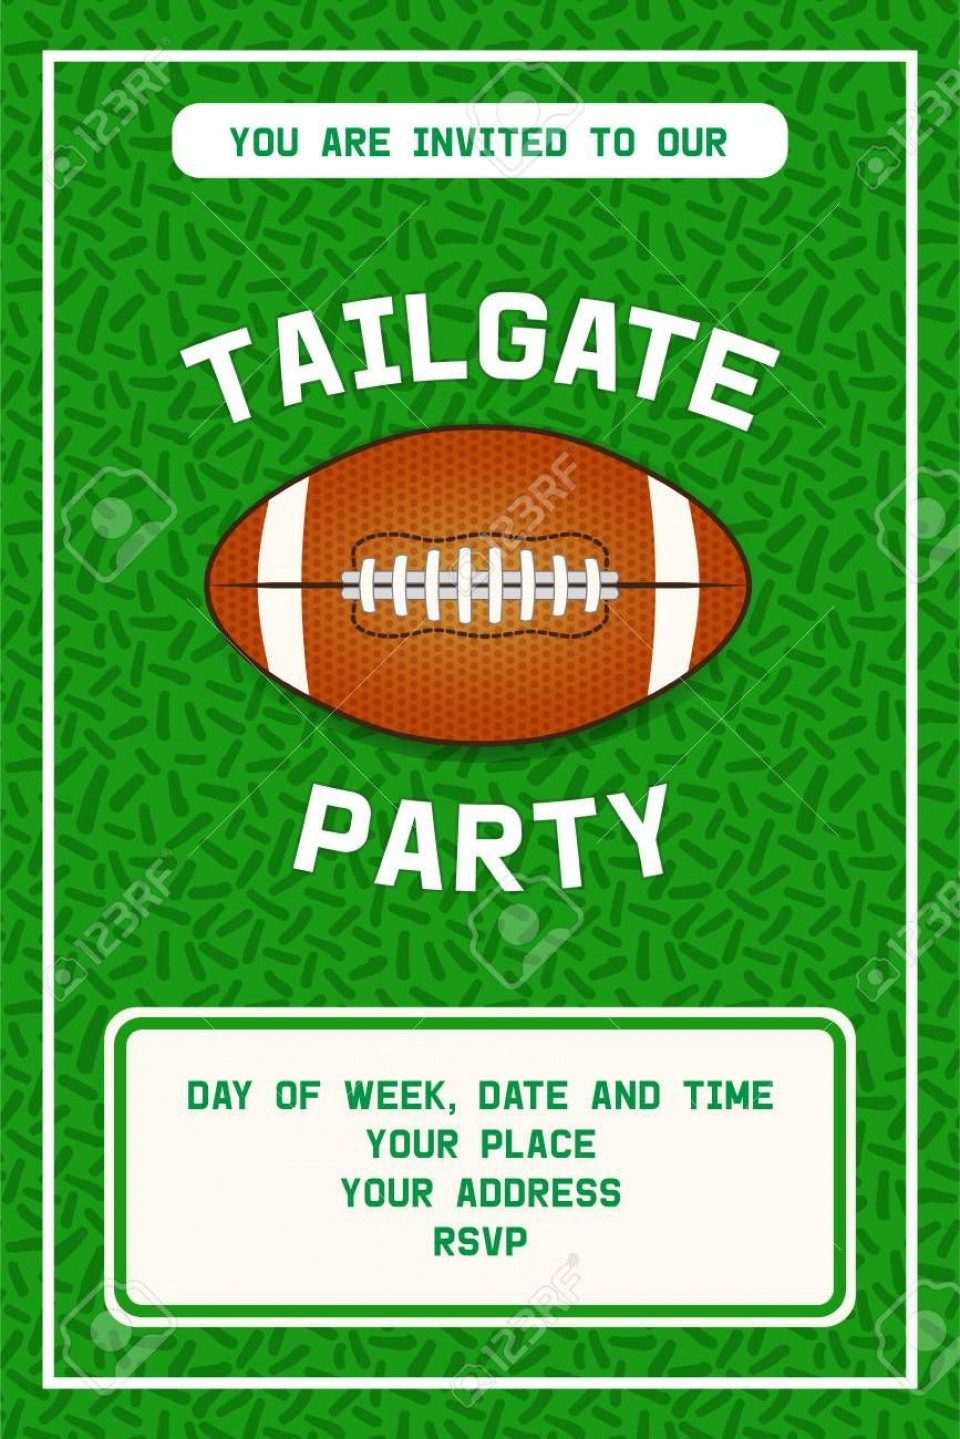 001 Shocking Free Tailgate Party Flyer Template Download Photo 960